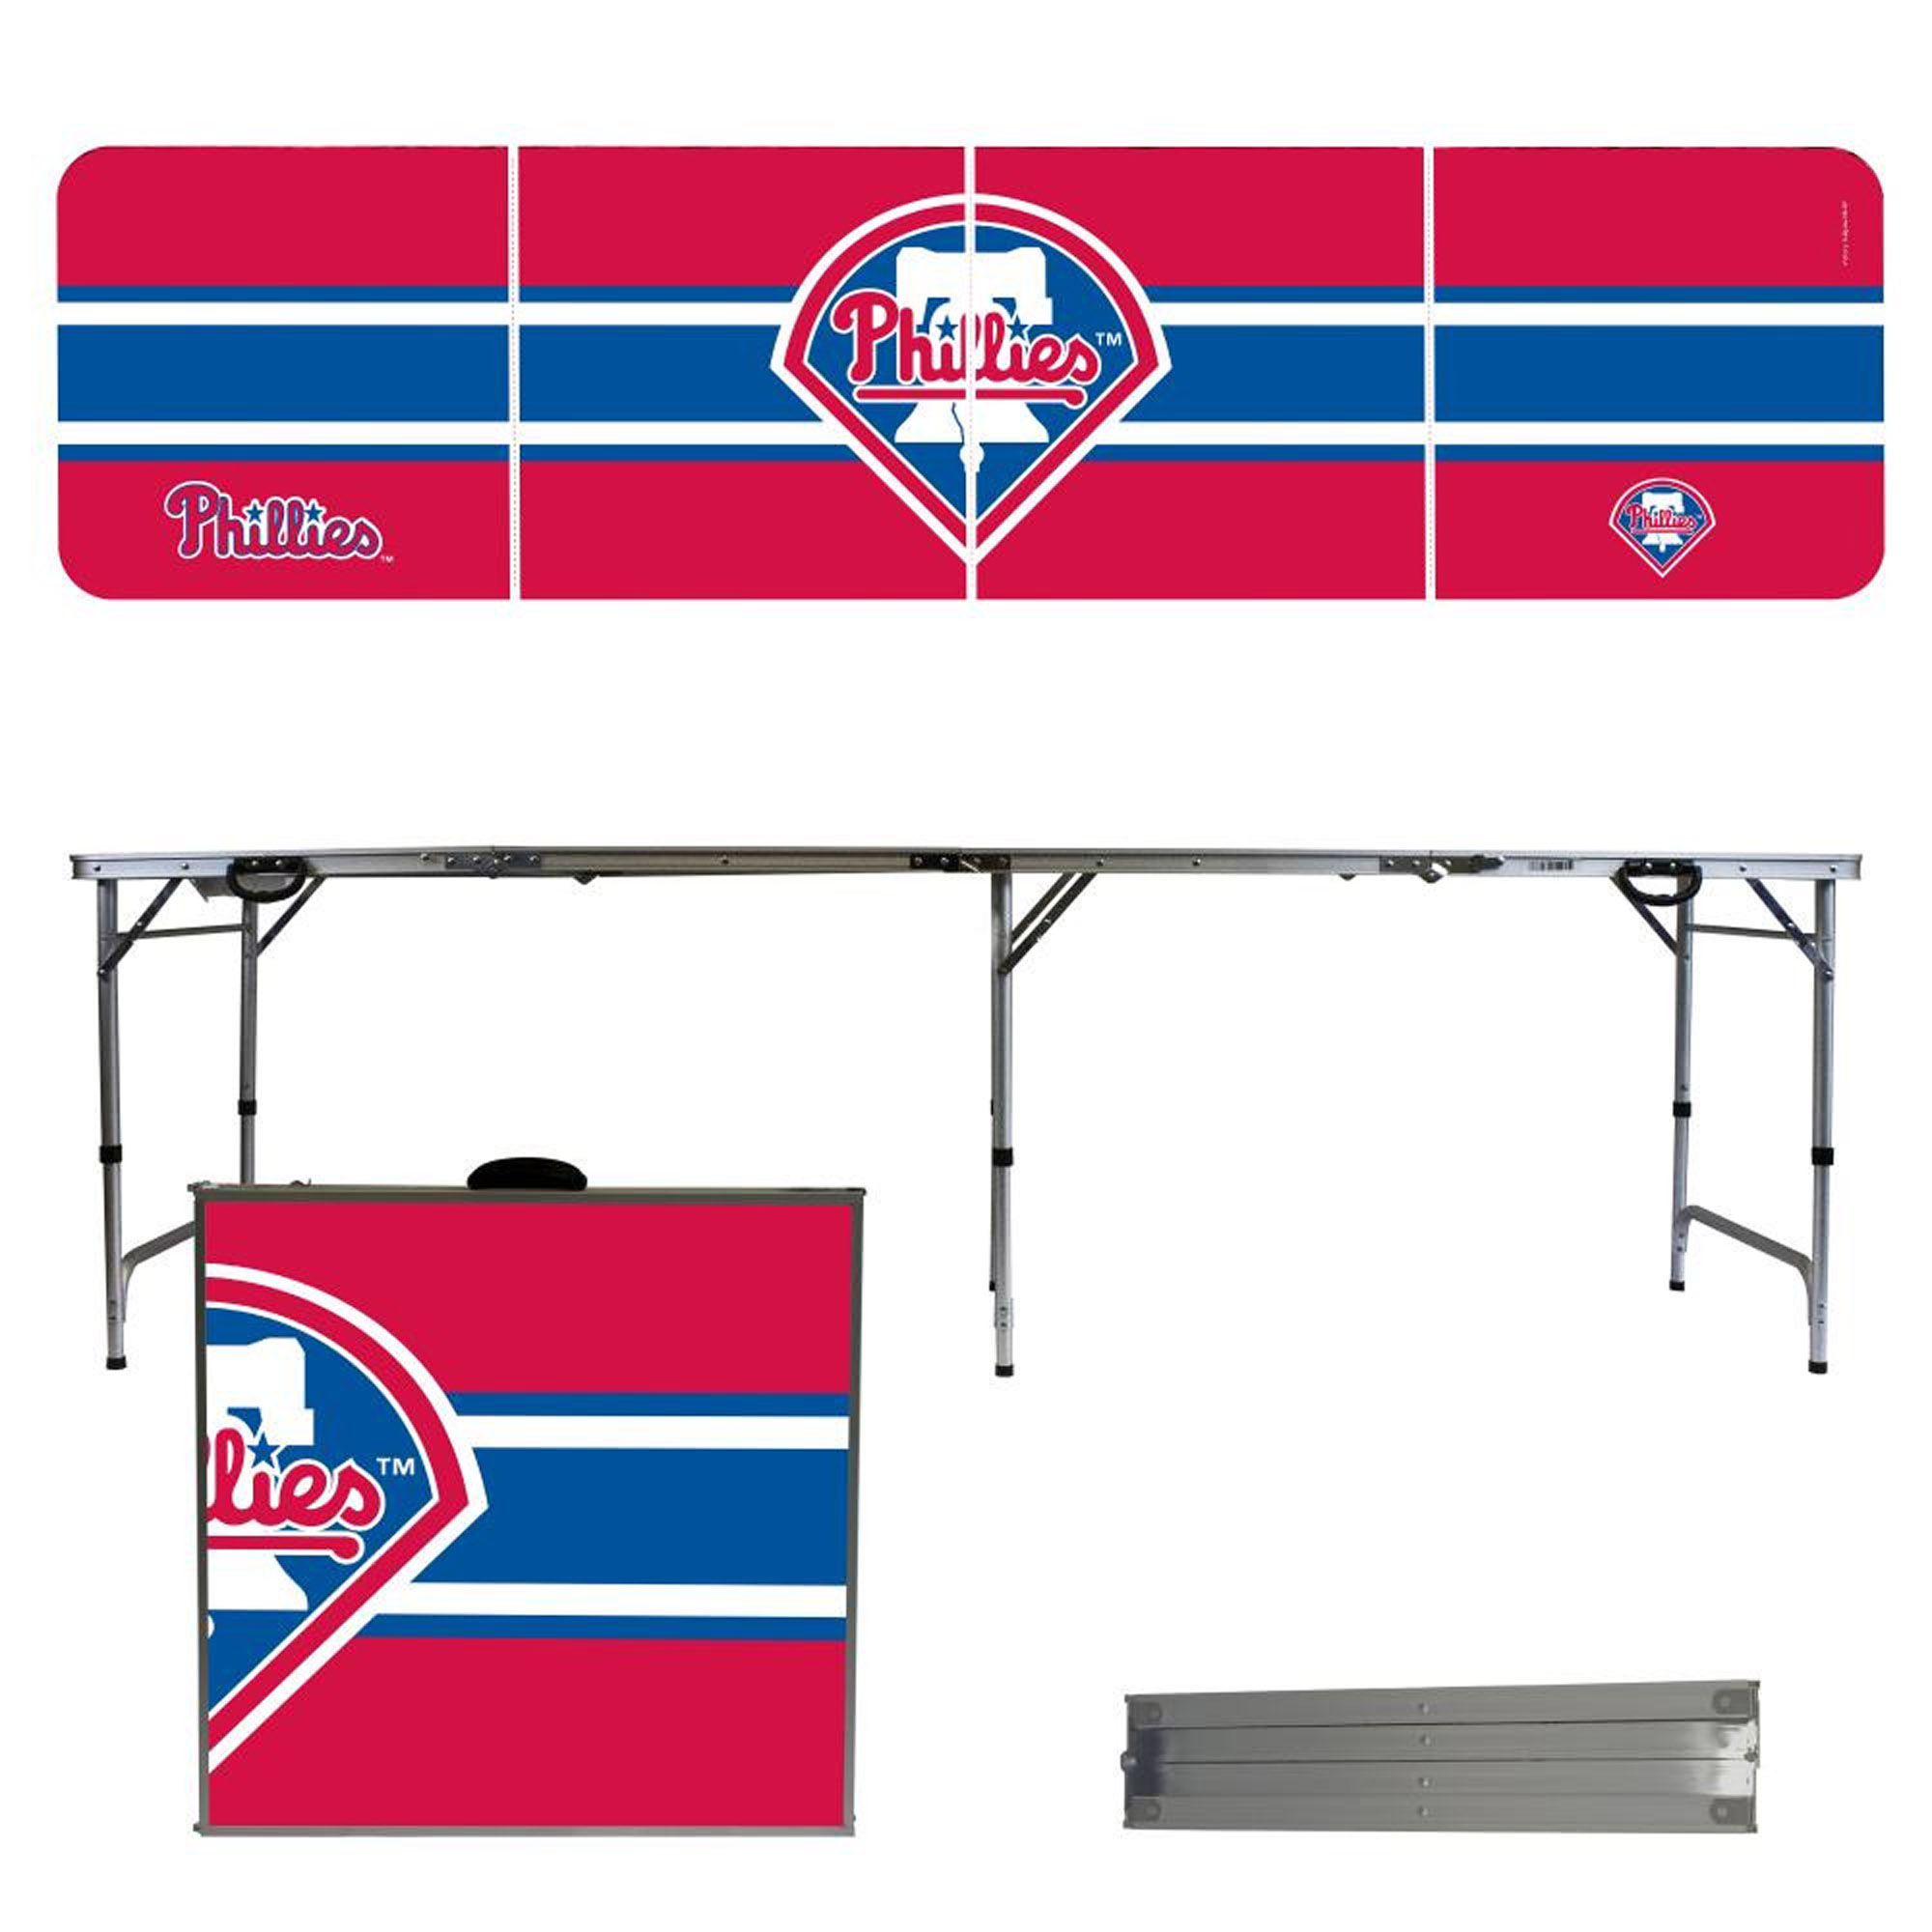 Philadelphia Phillies Striped Design 8' Portable Folding Tailgate Table - No Size